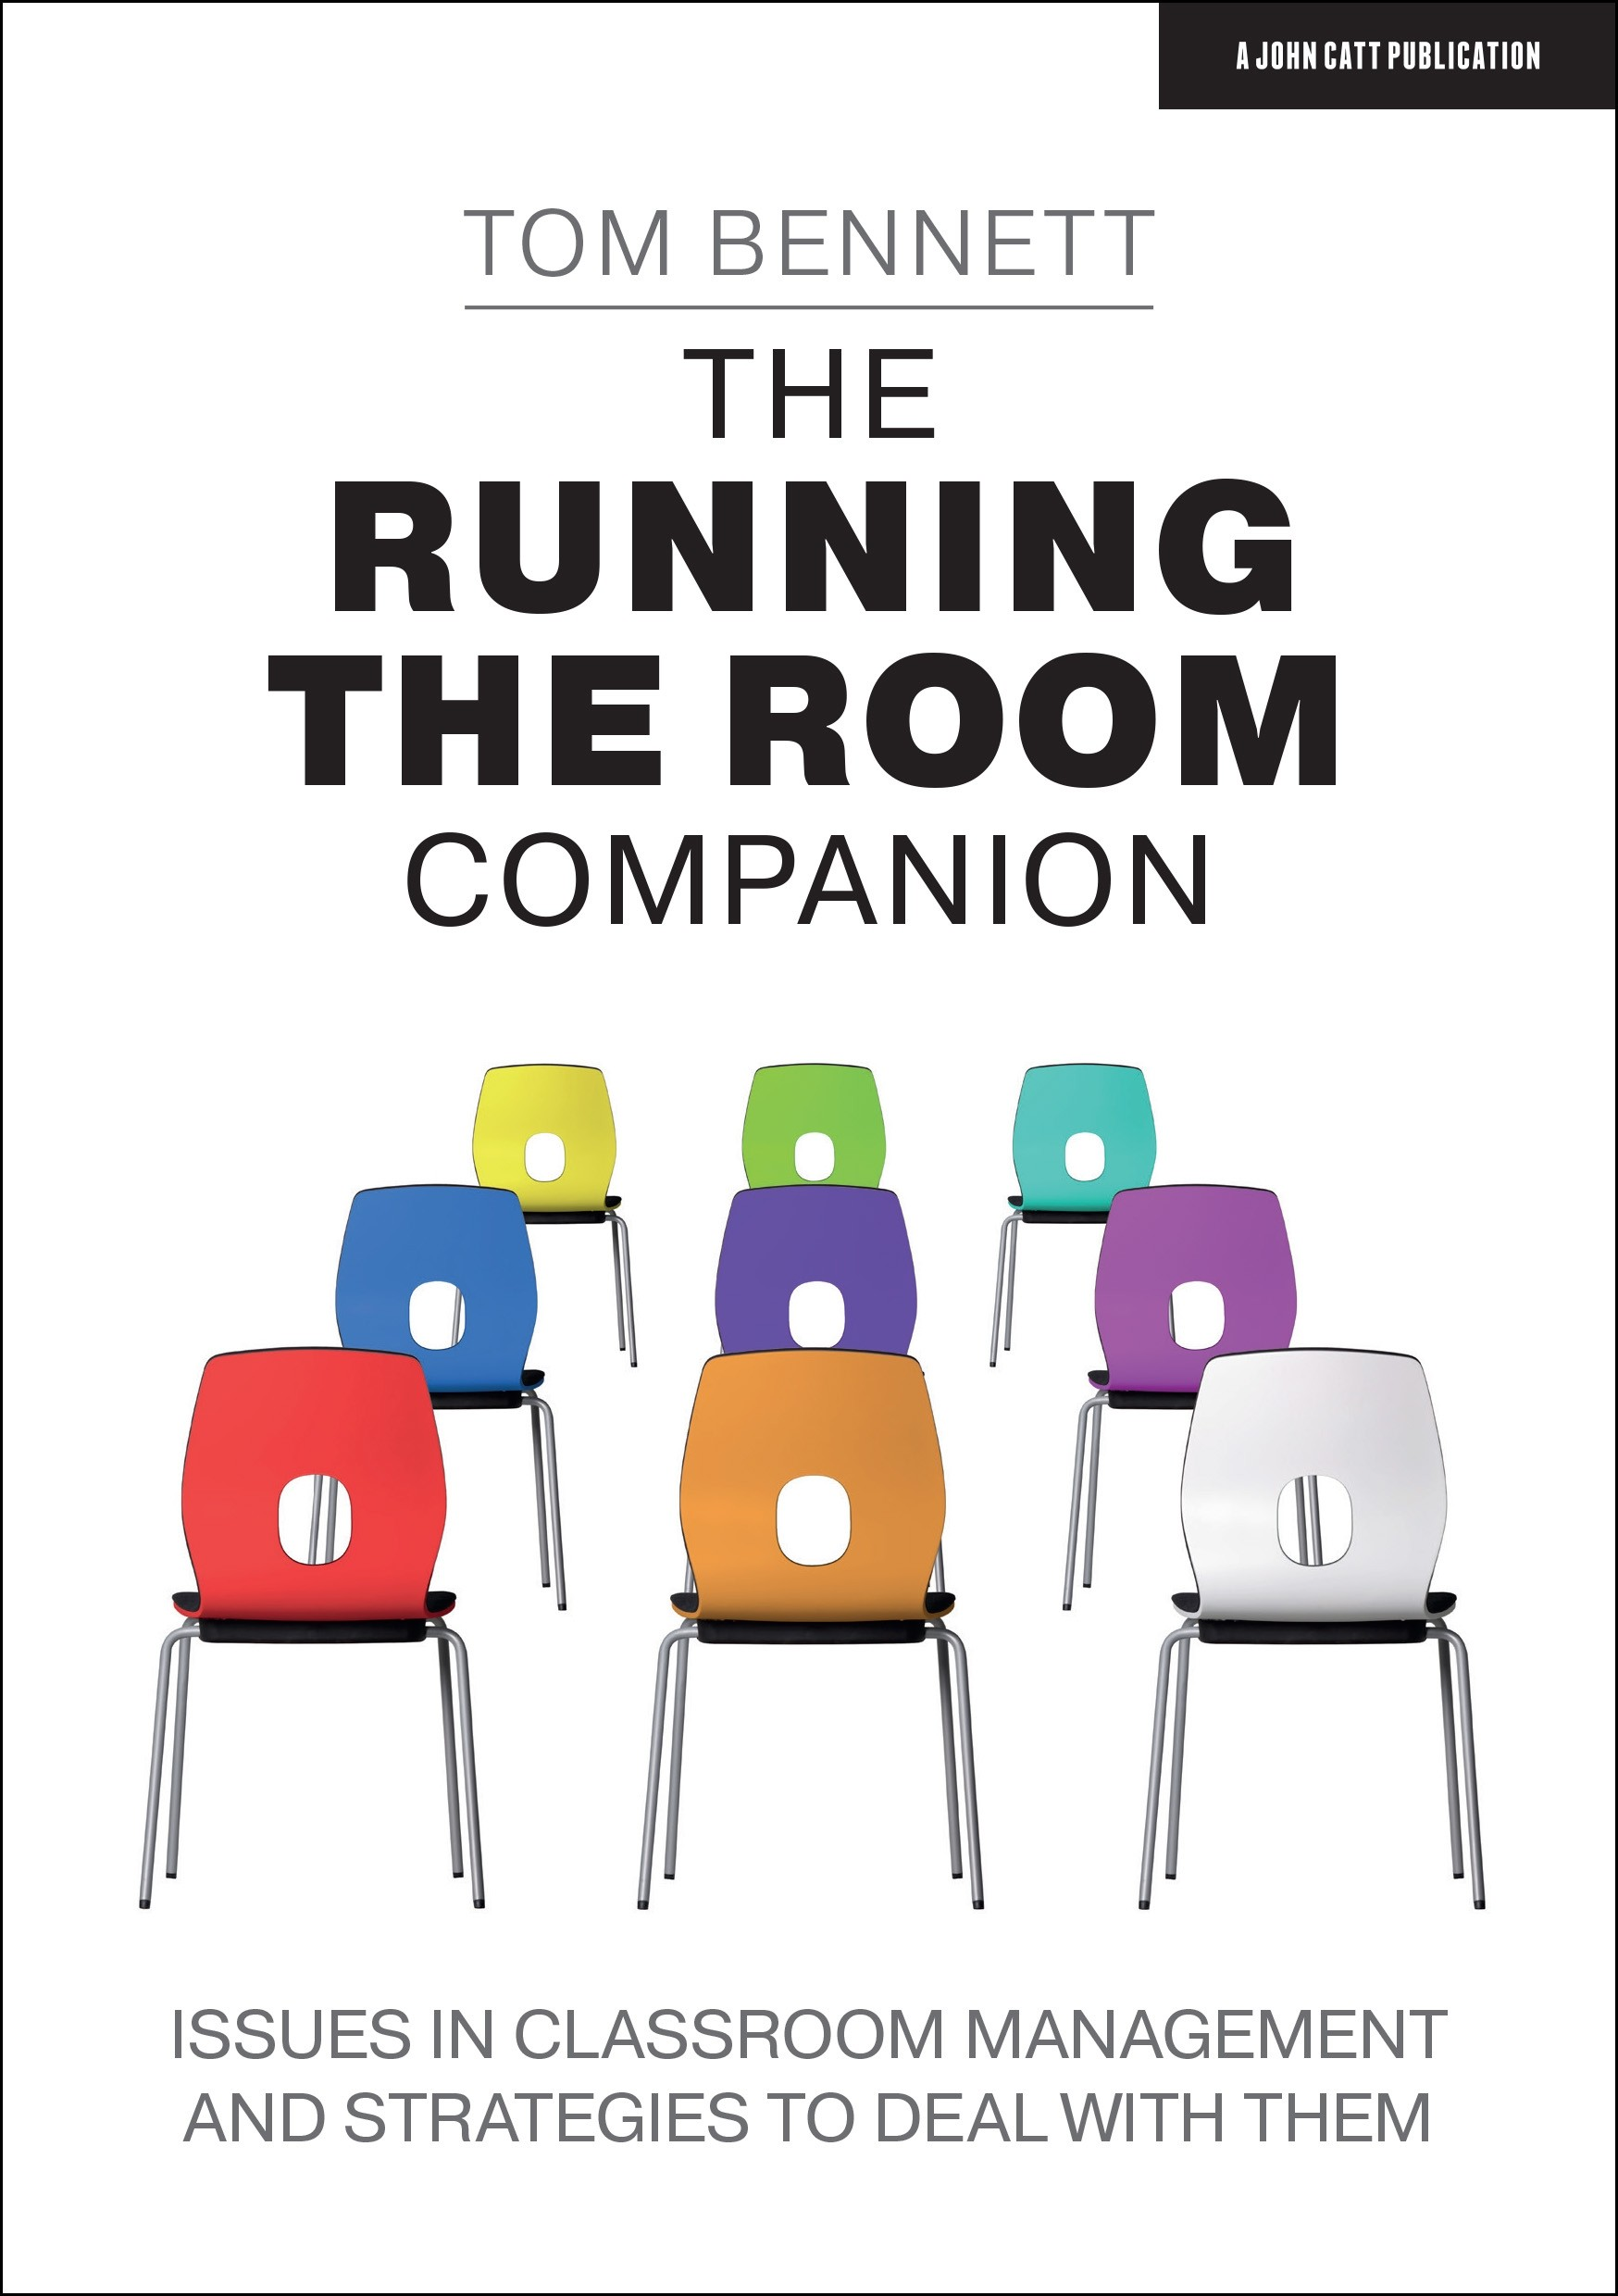 The Running the Room Companion: Issues in classroom management and strategies to deal with them